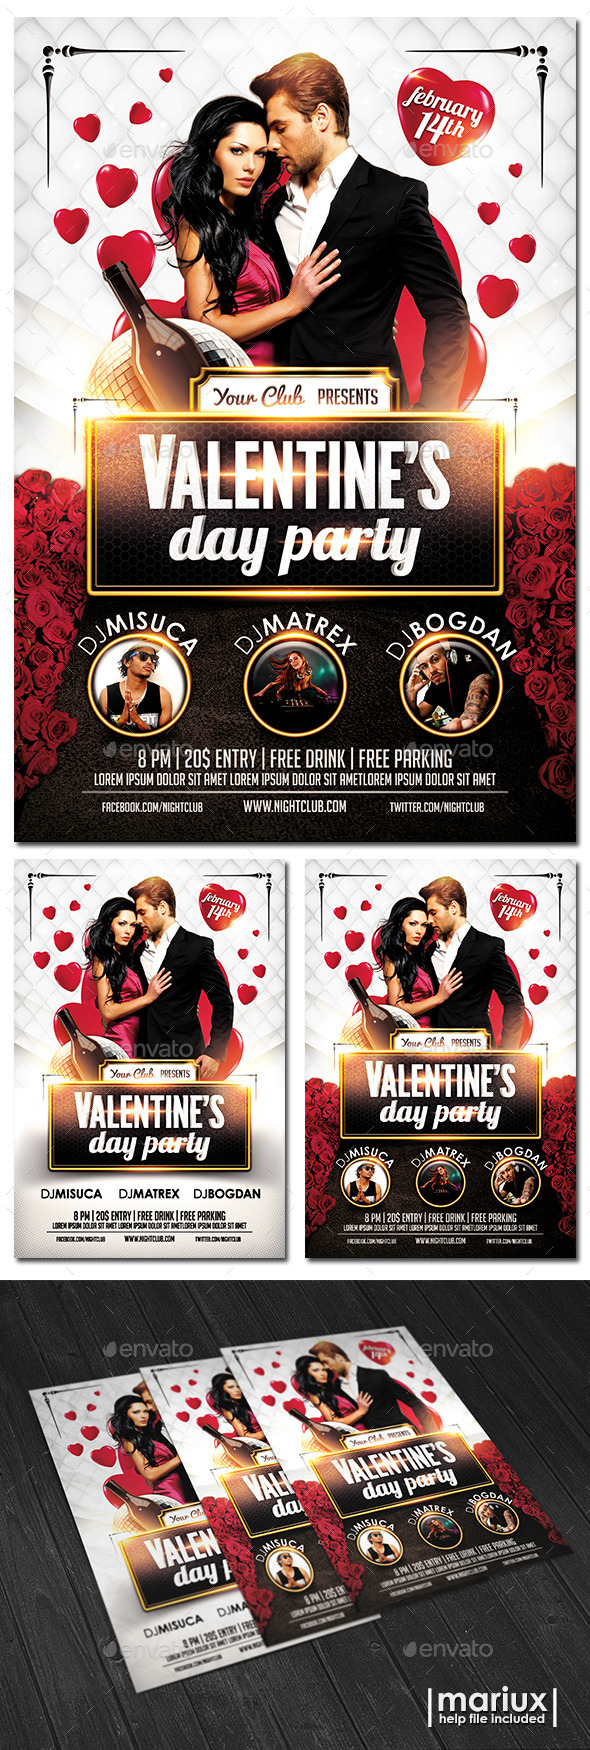 GraphicRiver Valentine s Day Party Flyer 9925361